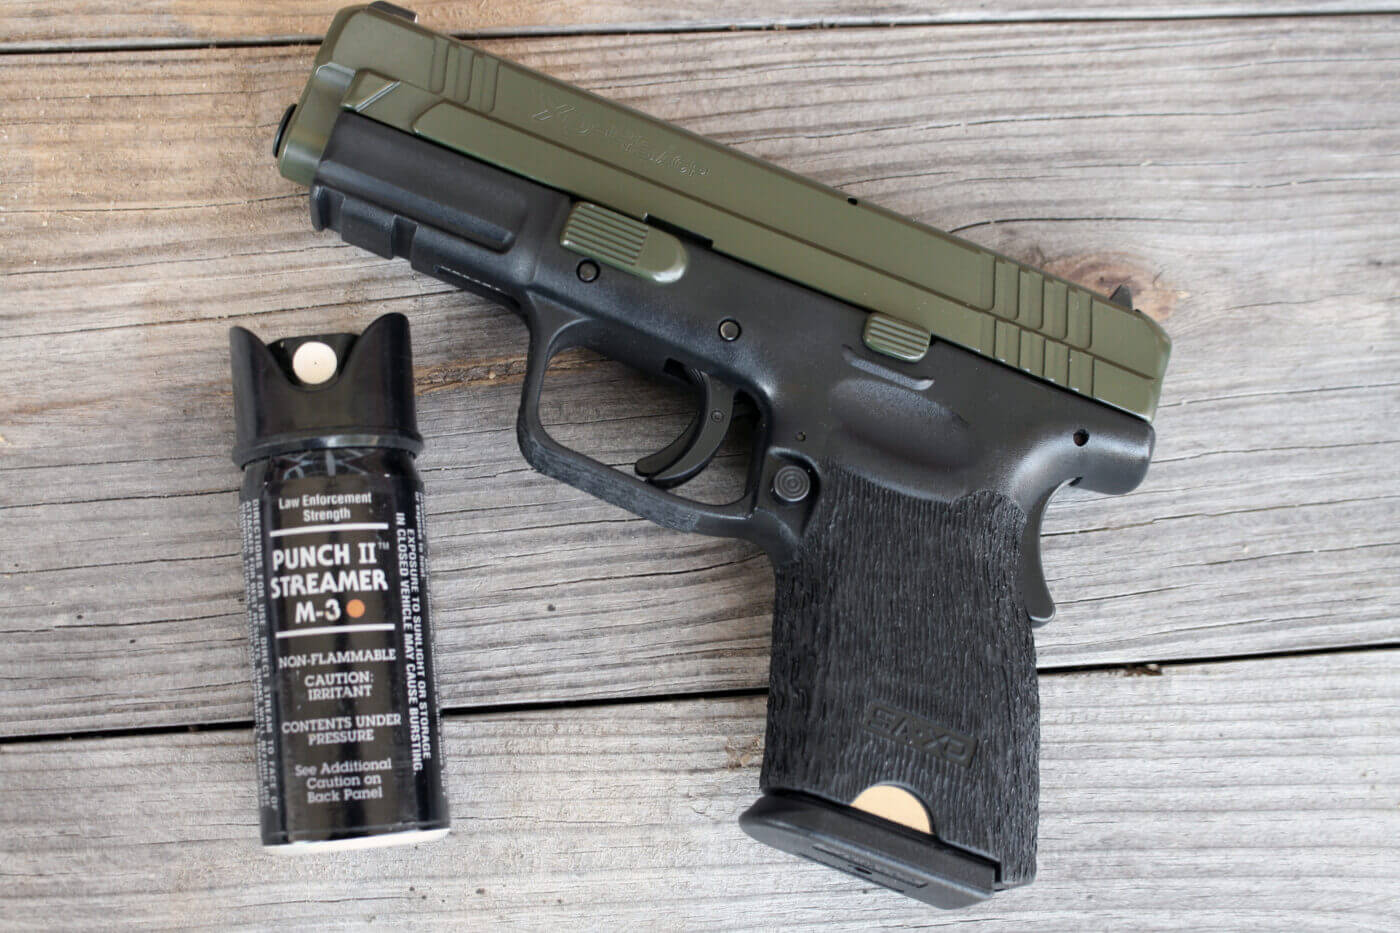 Pepper spray and a pistol